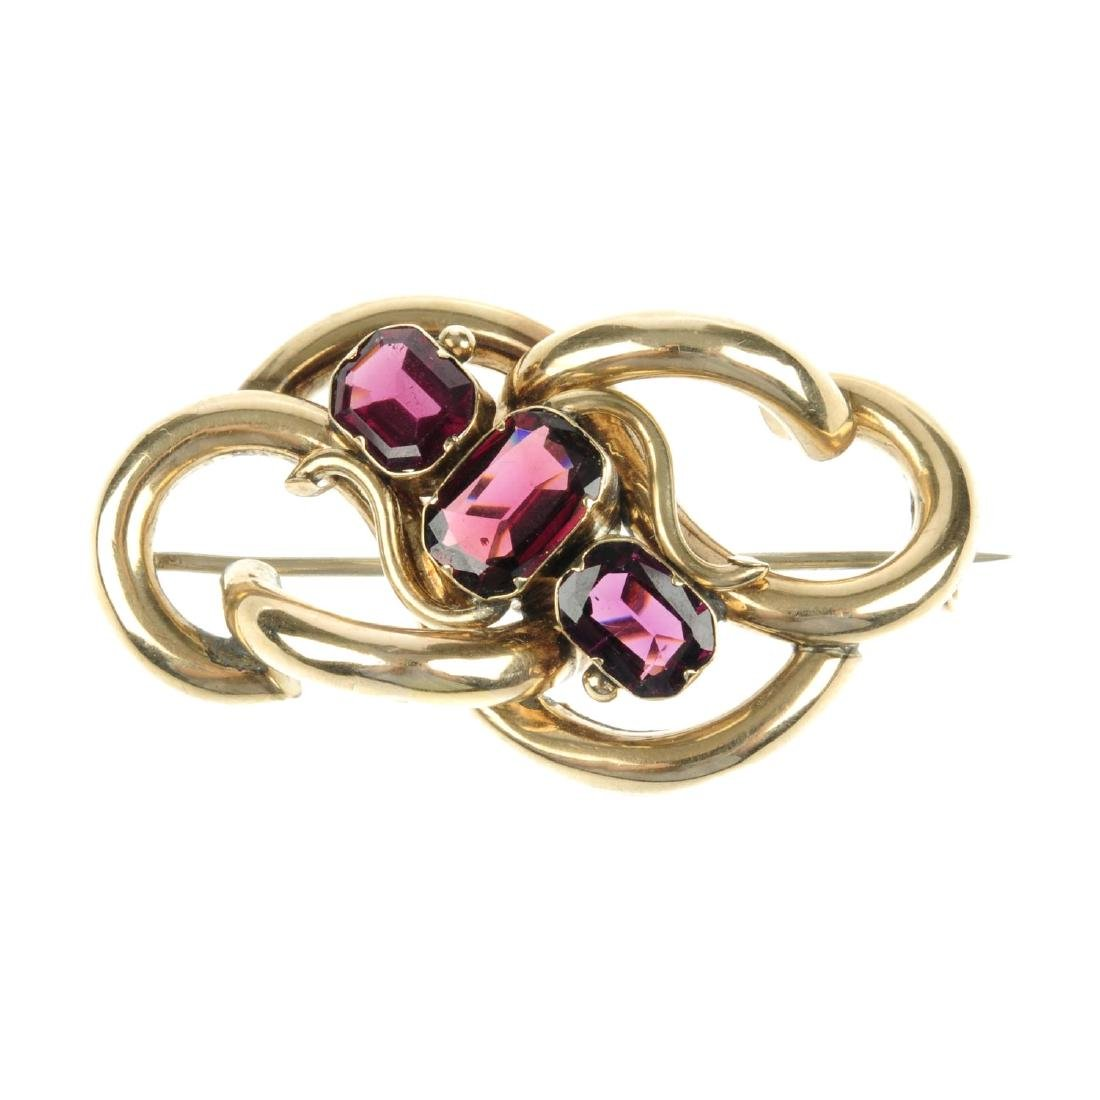 A garnet brooch. Designed as a series of curved